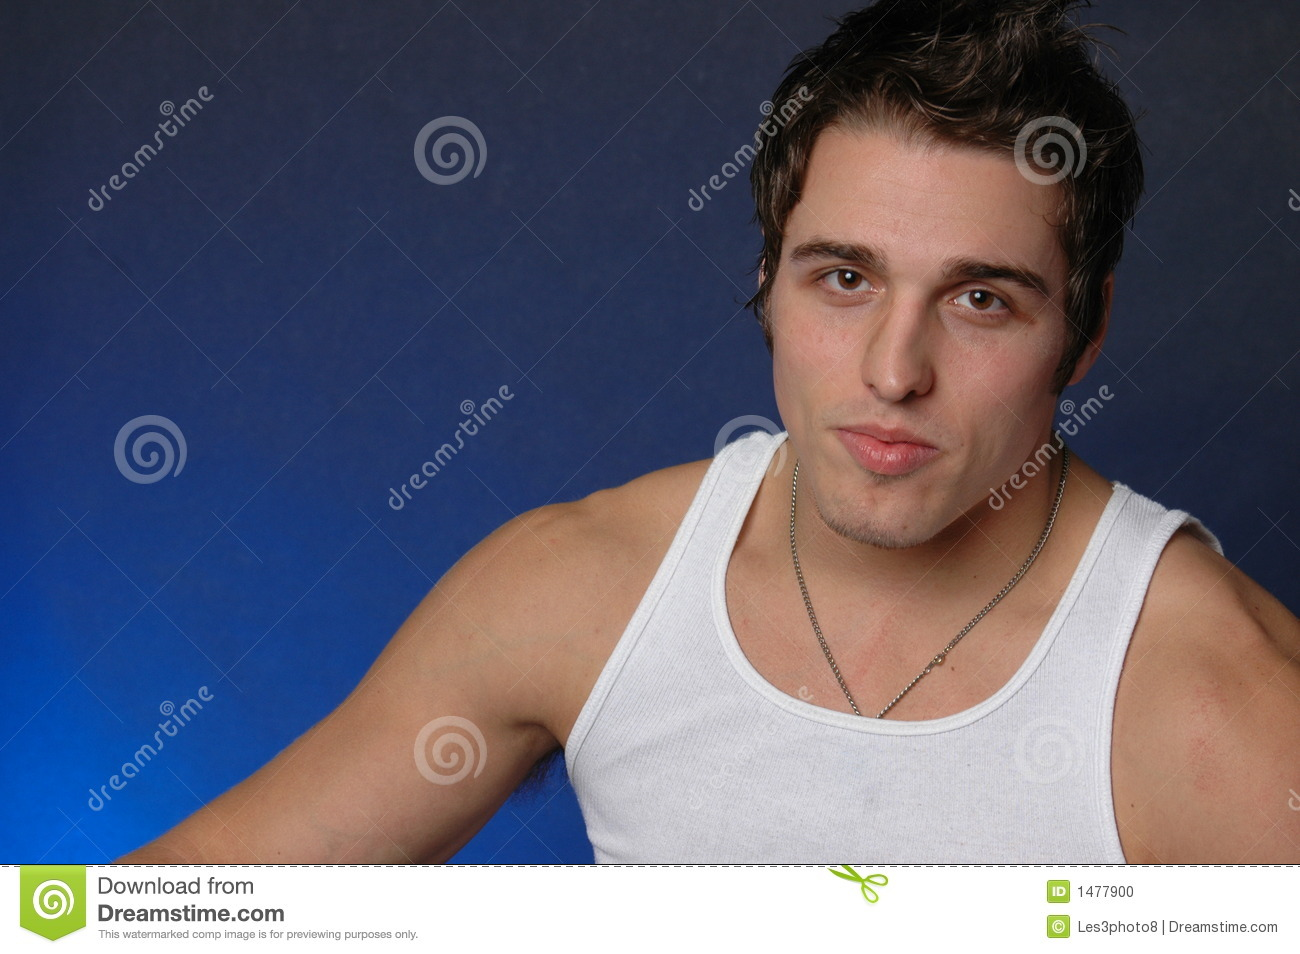 Italian American: Portrait Of An Italian American Male Stock Photo